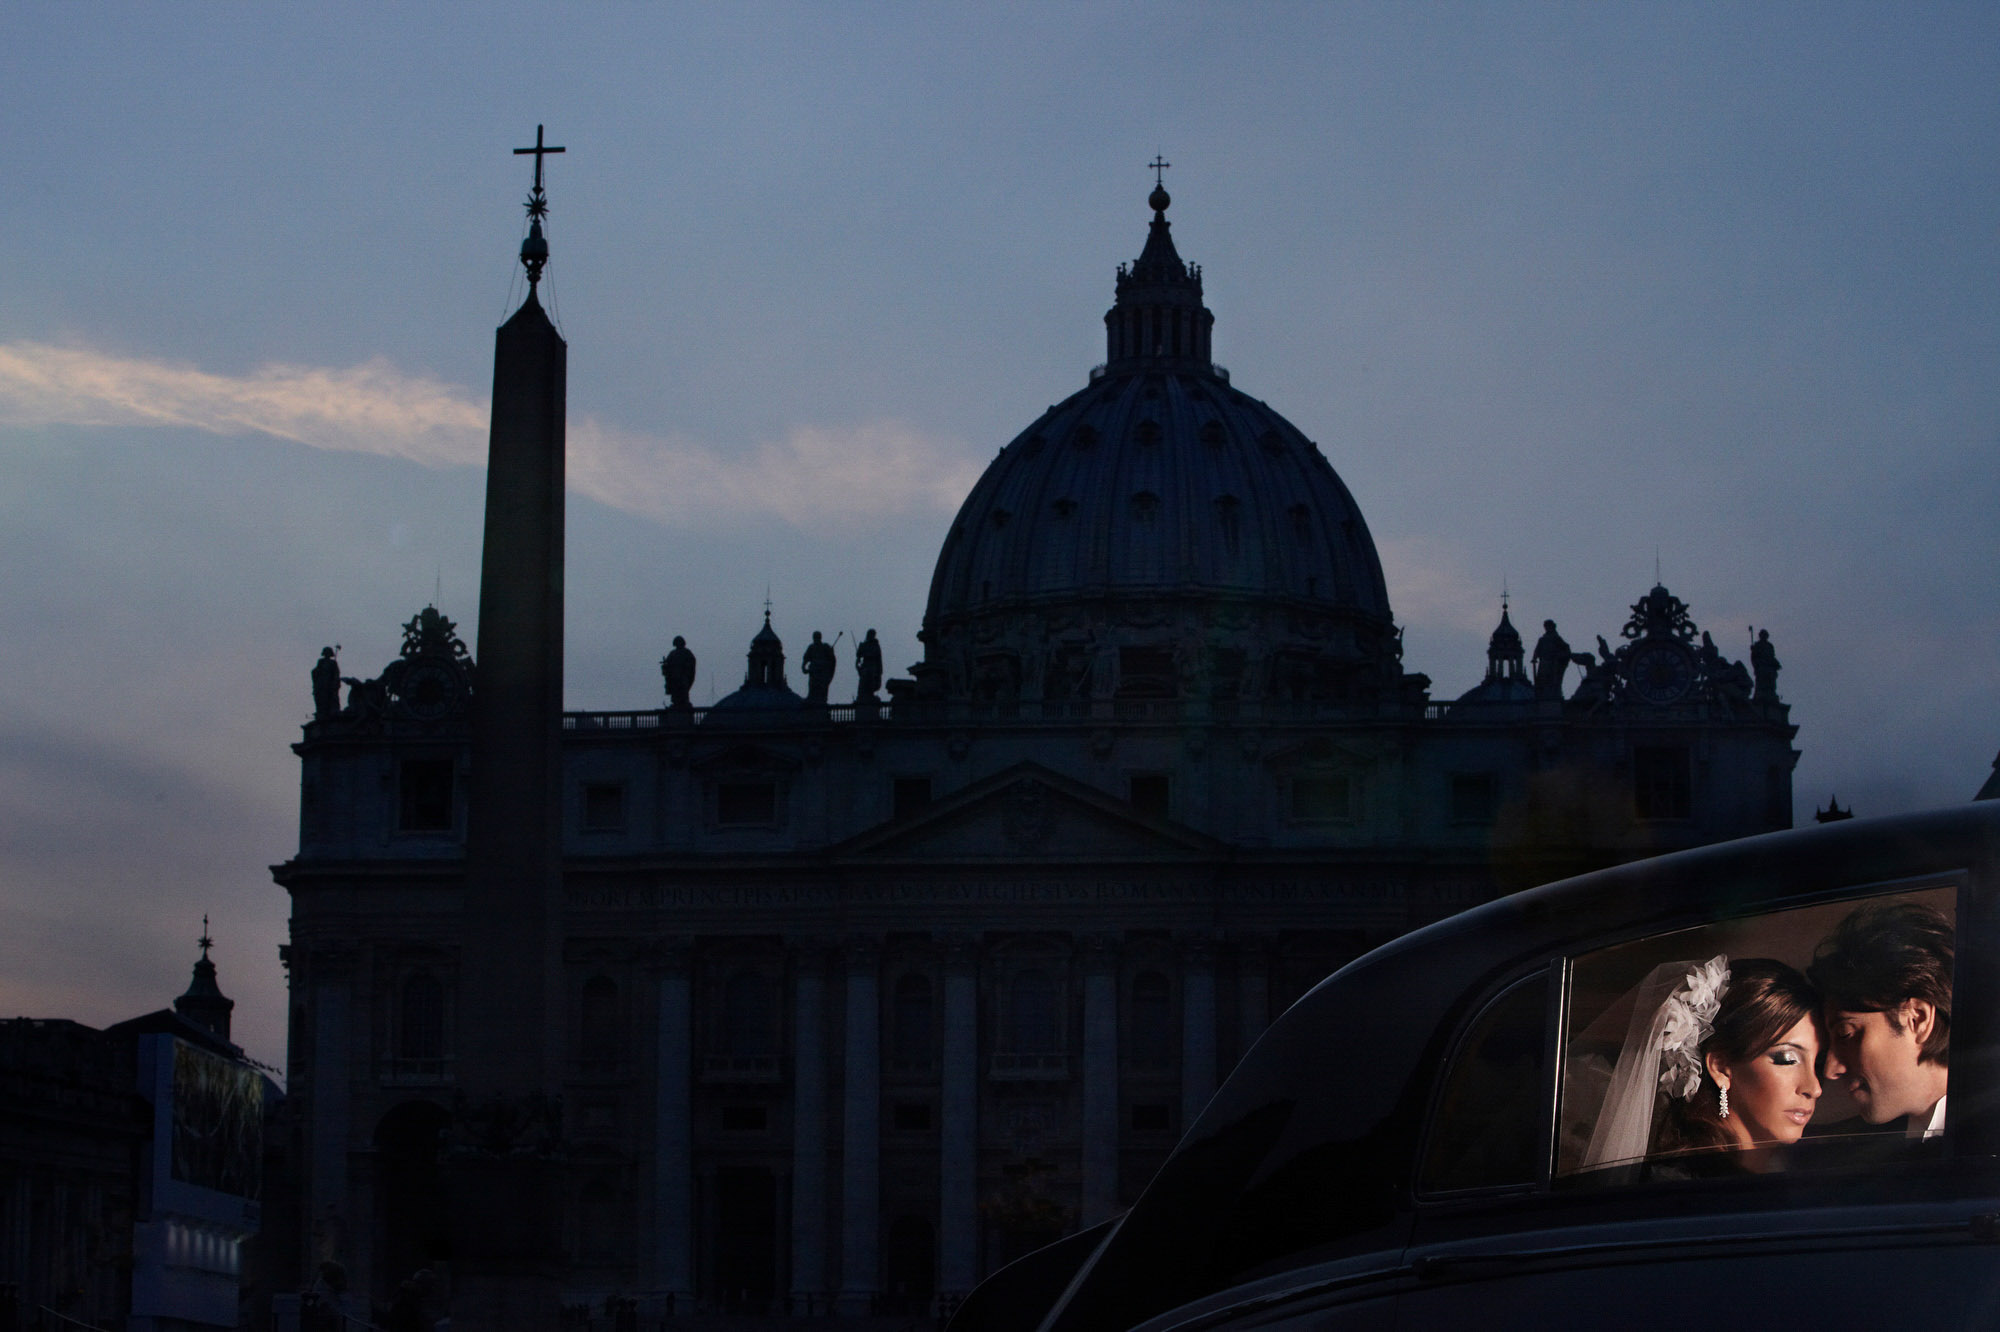 couple-in-limousine-light-silhouett-of-st-pauls-cathedral-in-rome-worlds-best-wedding-photos-jerry-ghionis-top-las-vcegas-photographer